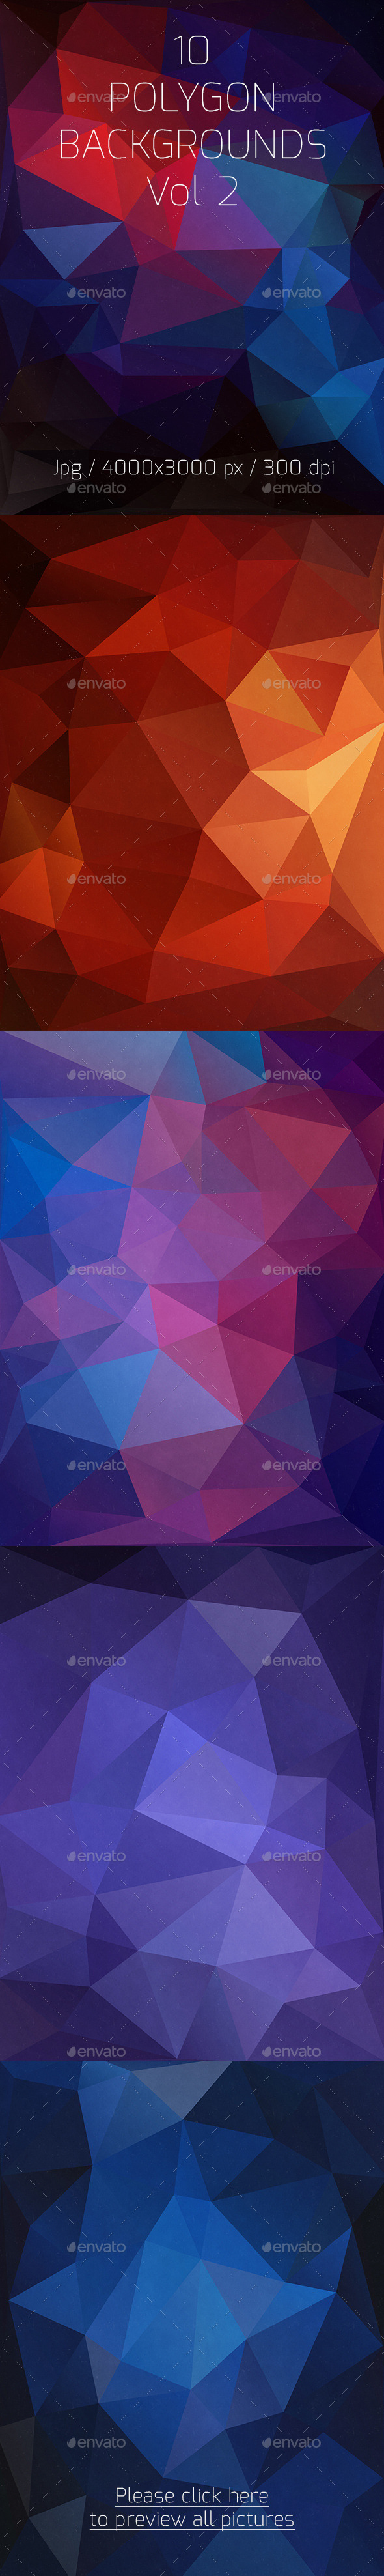 GraphicRiver 10 Polygon Backgrounds Vol 2 10251207